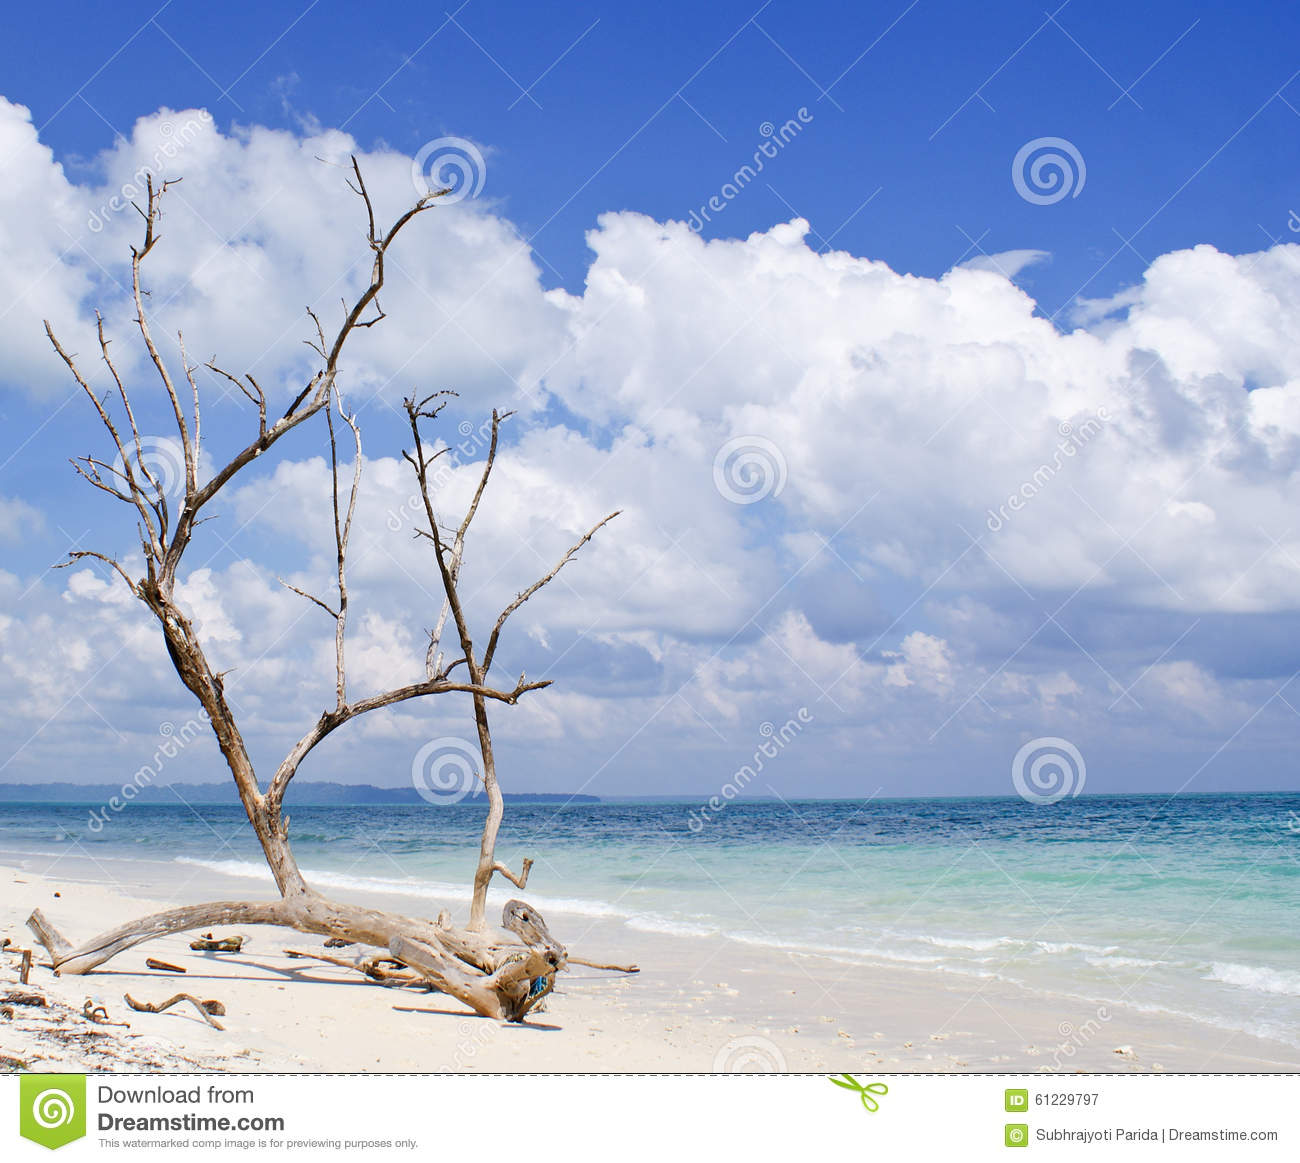 Download Dried Tree Trunk With Bare Branches On The Backdrop Of Blue Sea Stock Image - Image of backdrop, white: 61229797